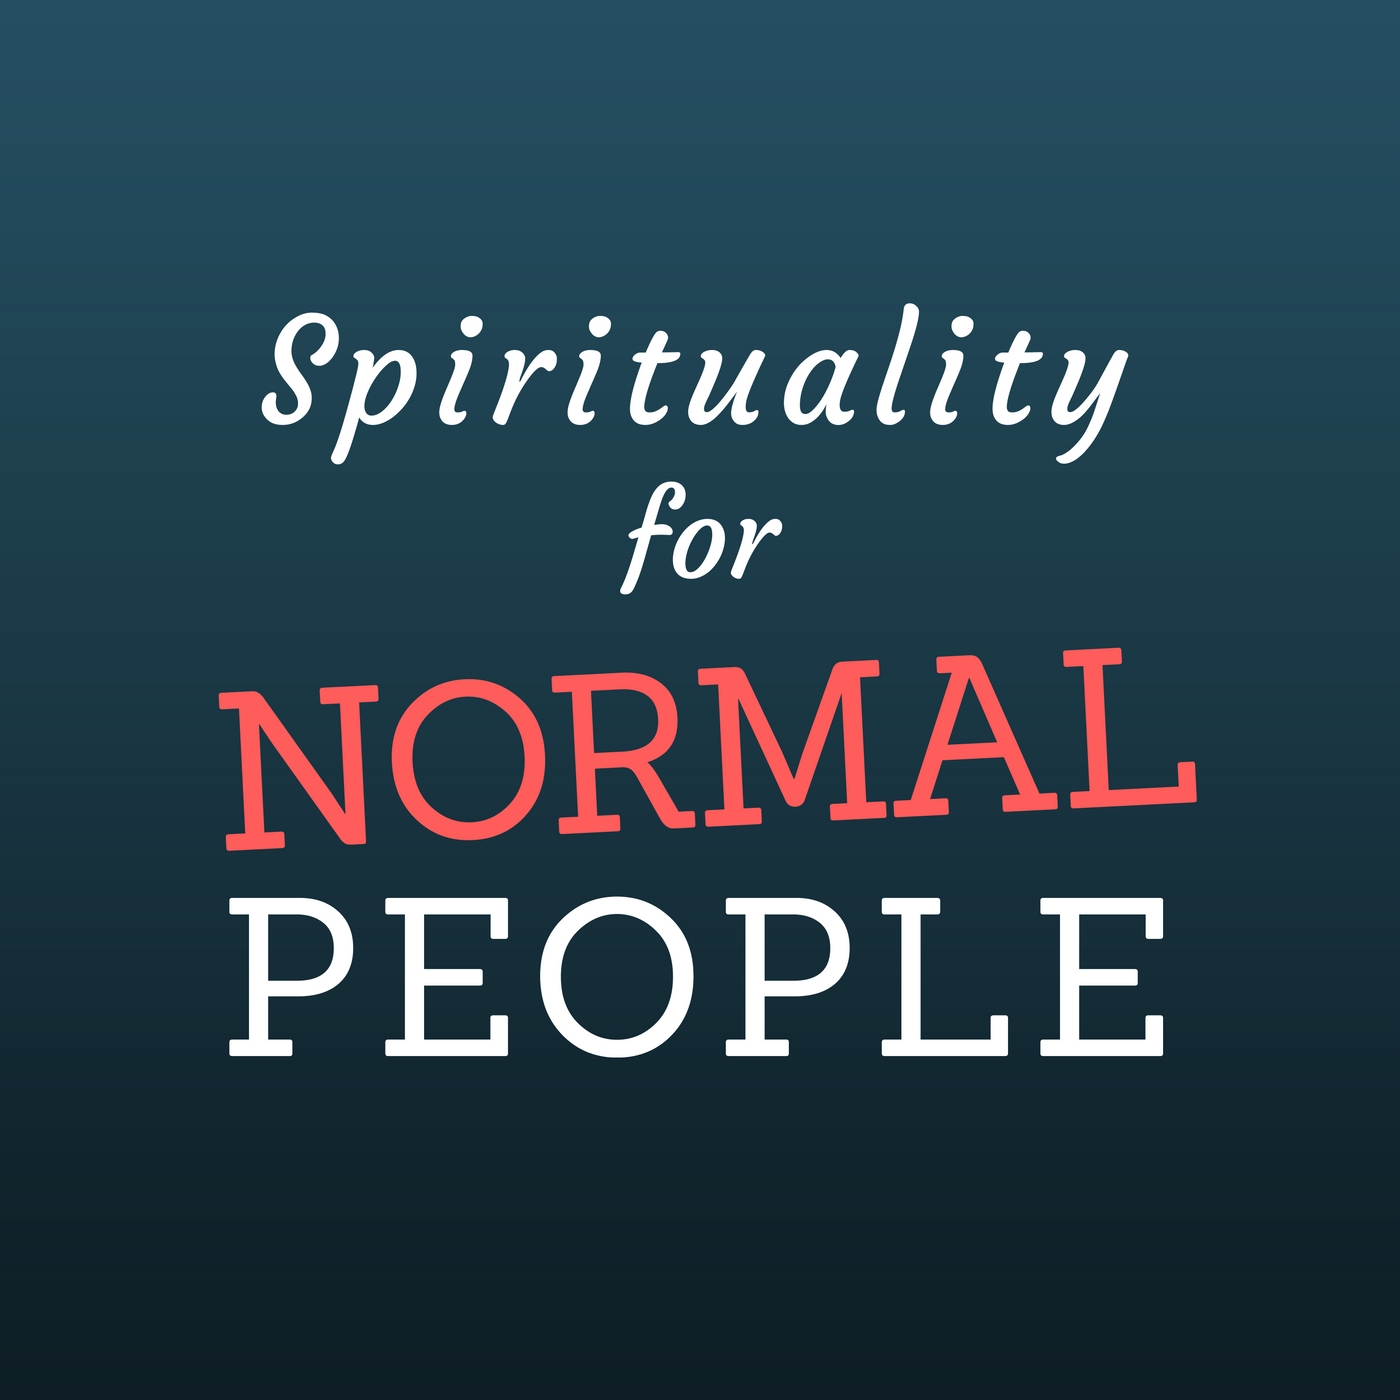 Spirituality for Normal People